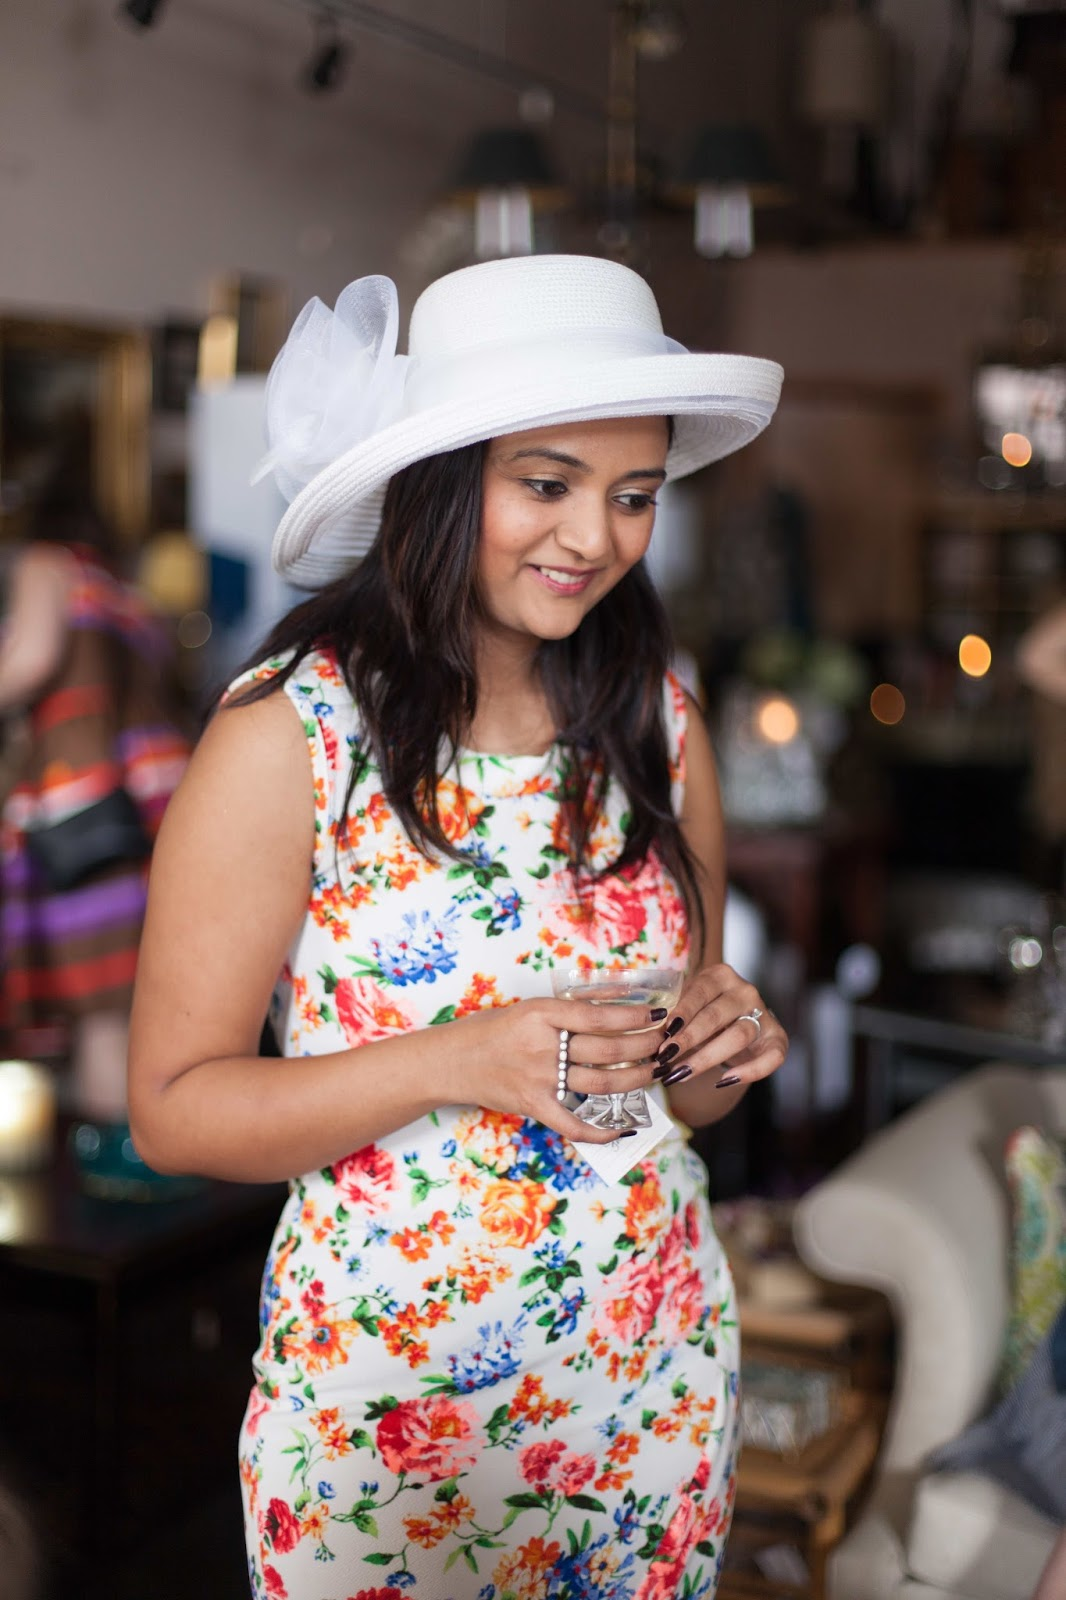 floral dress, srping fashion, ananya,beautiful  indian girl, white dress with white hat and white shoes, seattle fashion blogger